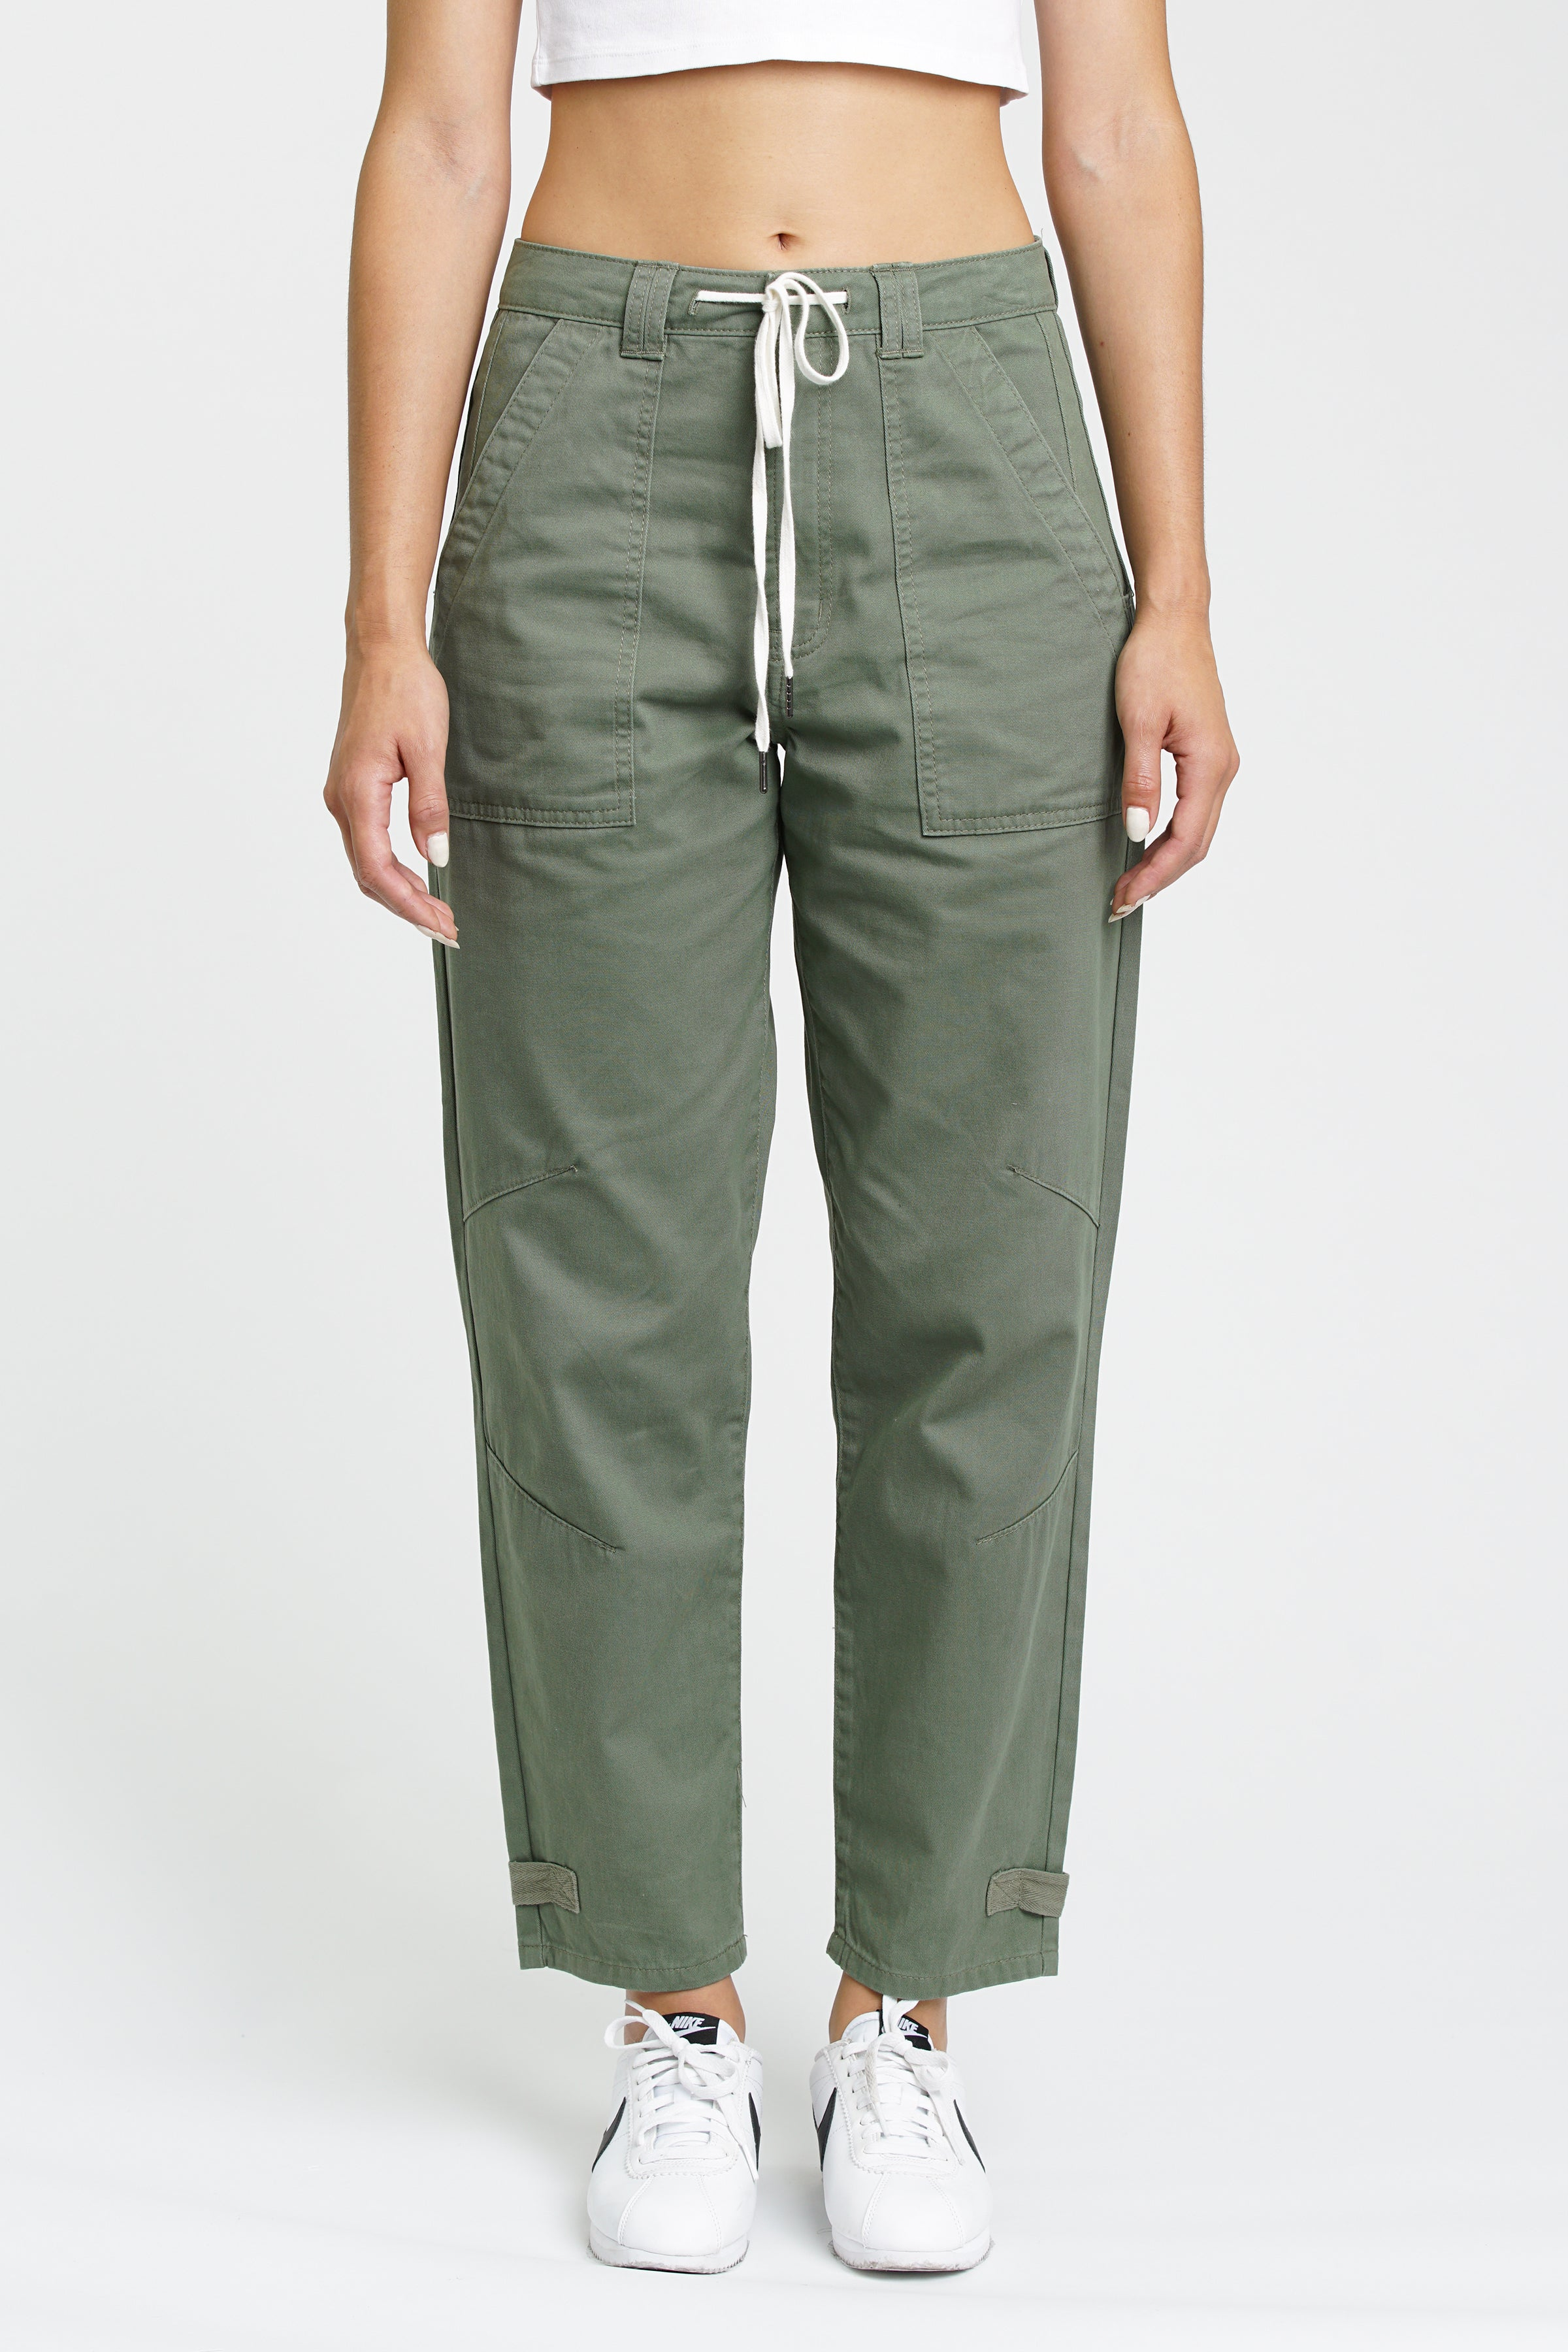 Pamela High Rise Utility Pant - Colonel